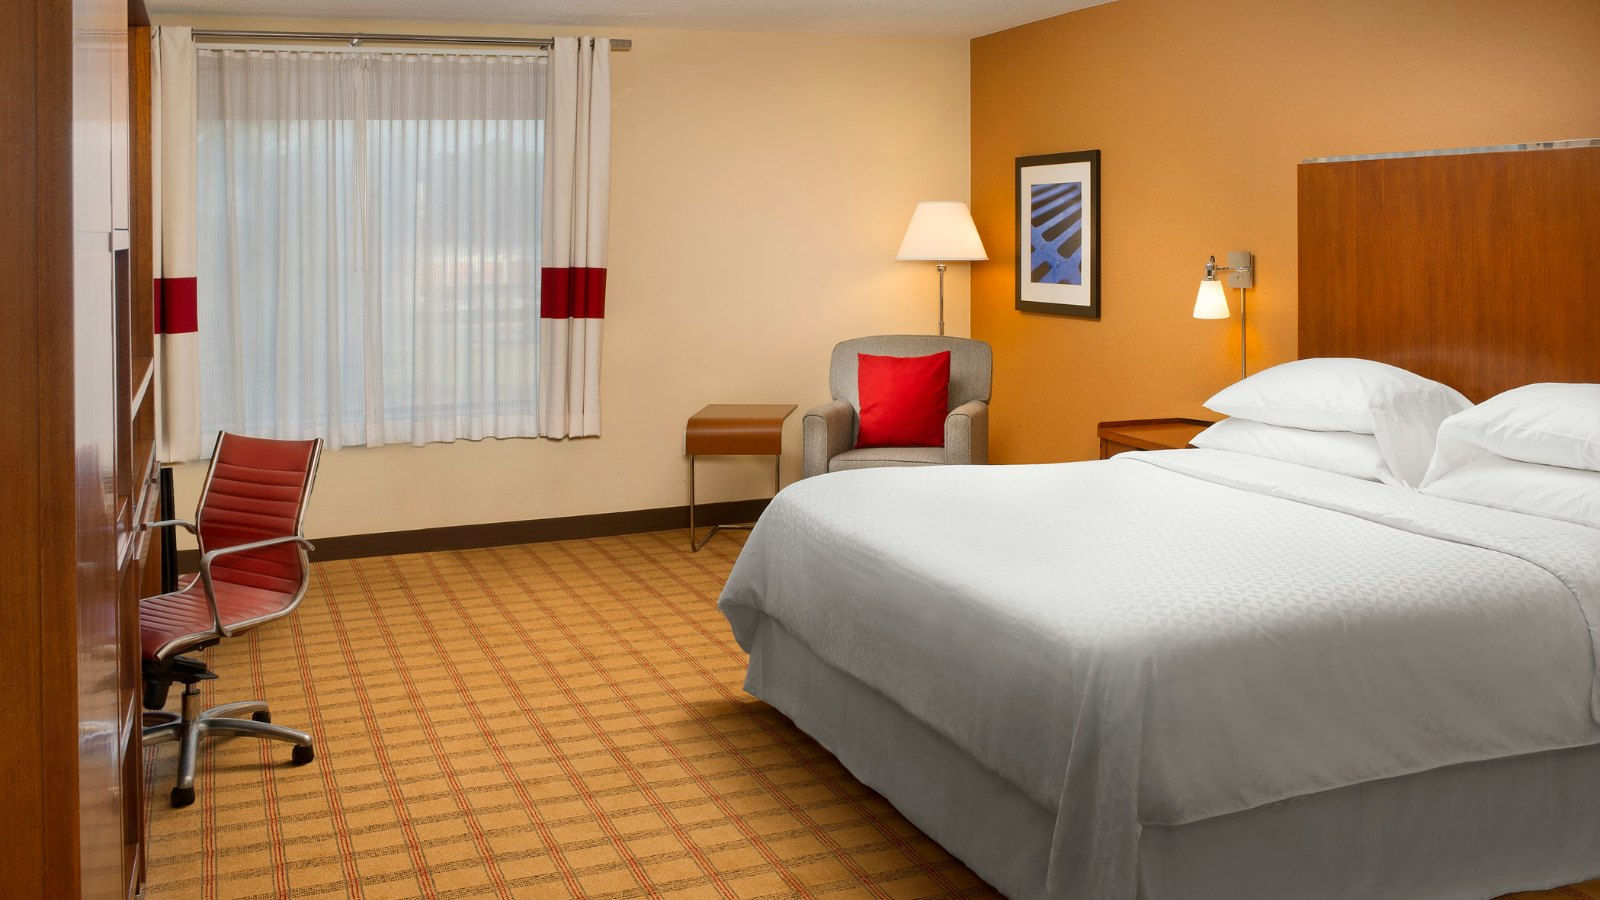 Jacksonville Accommodations - King Room